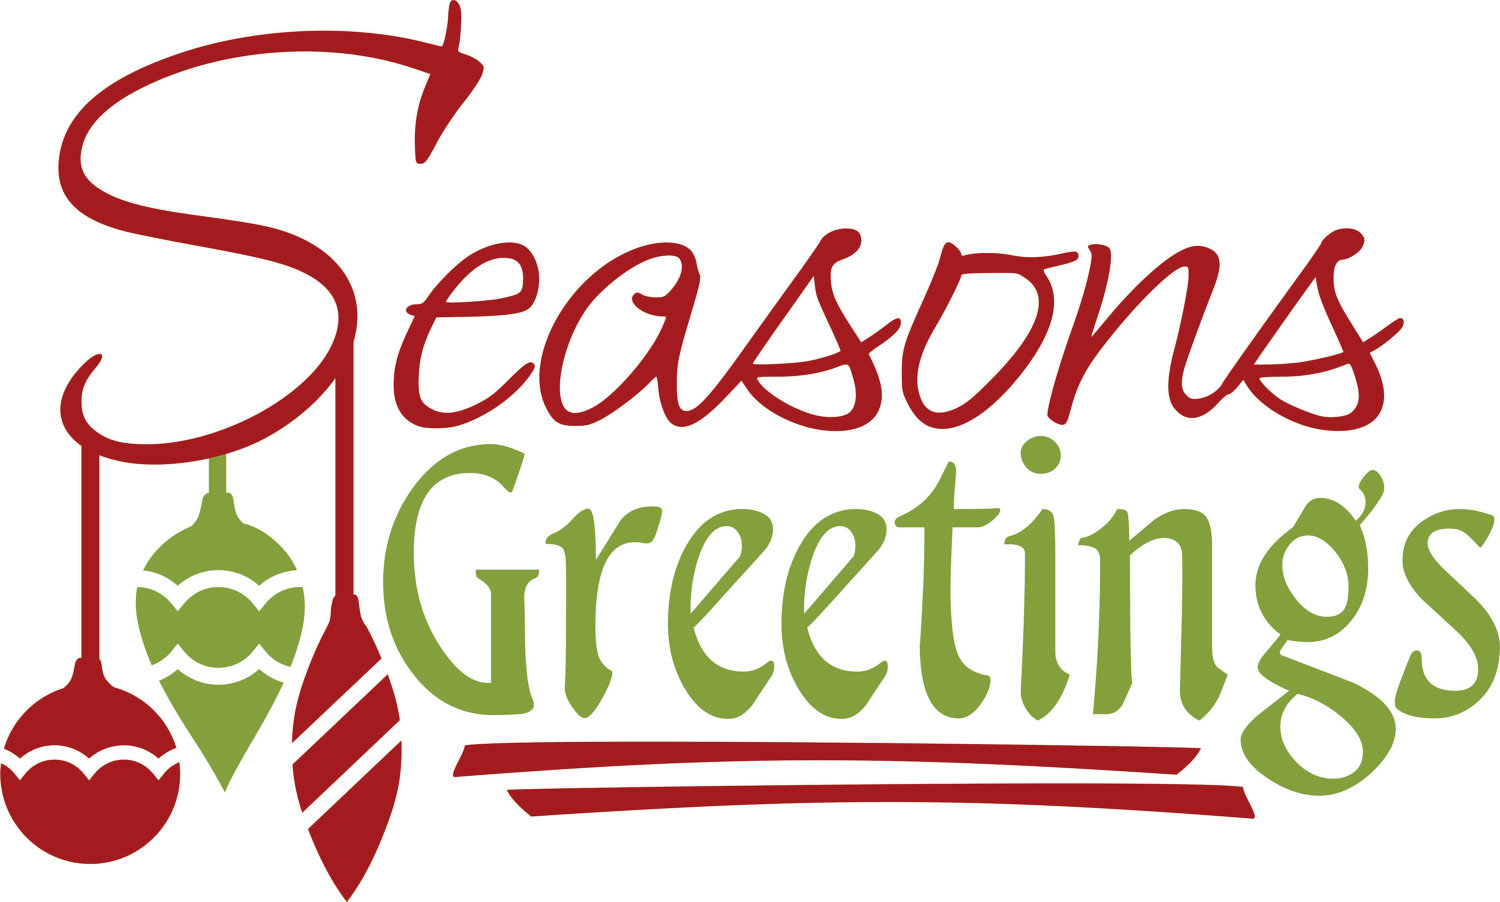 Seasons greetings banners clipart picture royalty free library Seasons Greetings Banner Clipart picture royalty free library